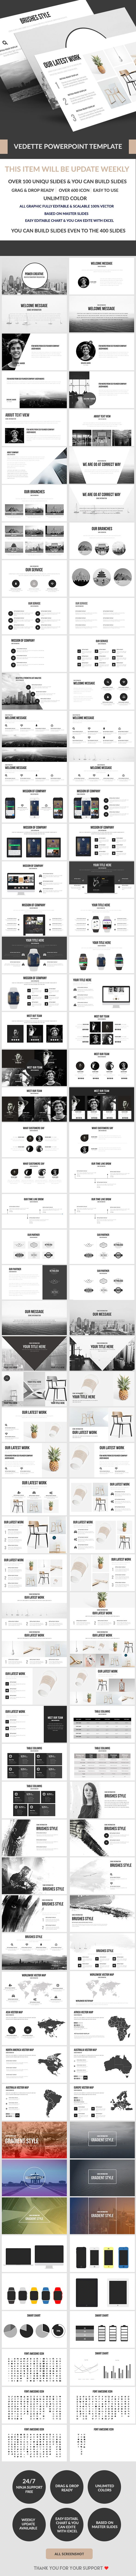 Vedette PowerPoint Template. Download here: http://graphicriver.net/item/vedette-powerpoint-template/16086020?ref=ksioks